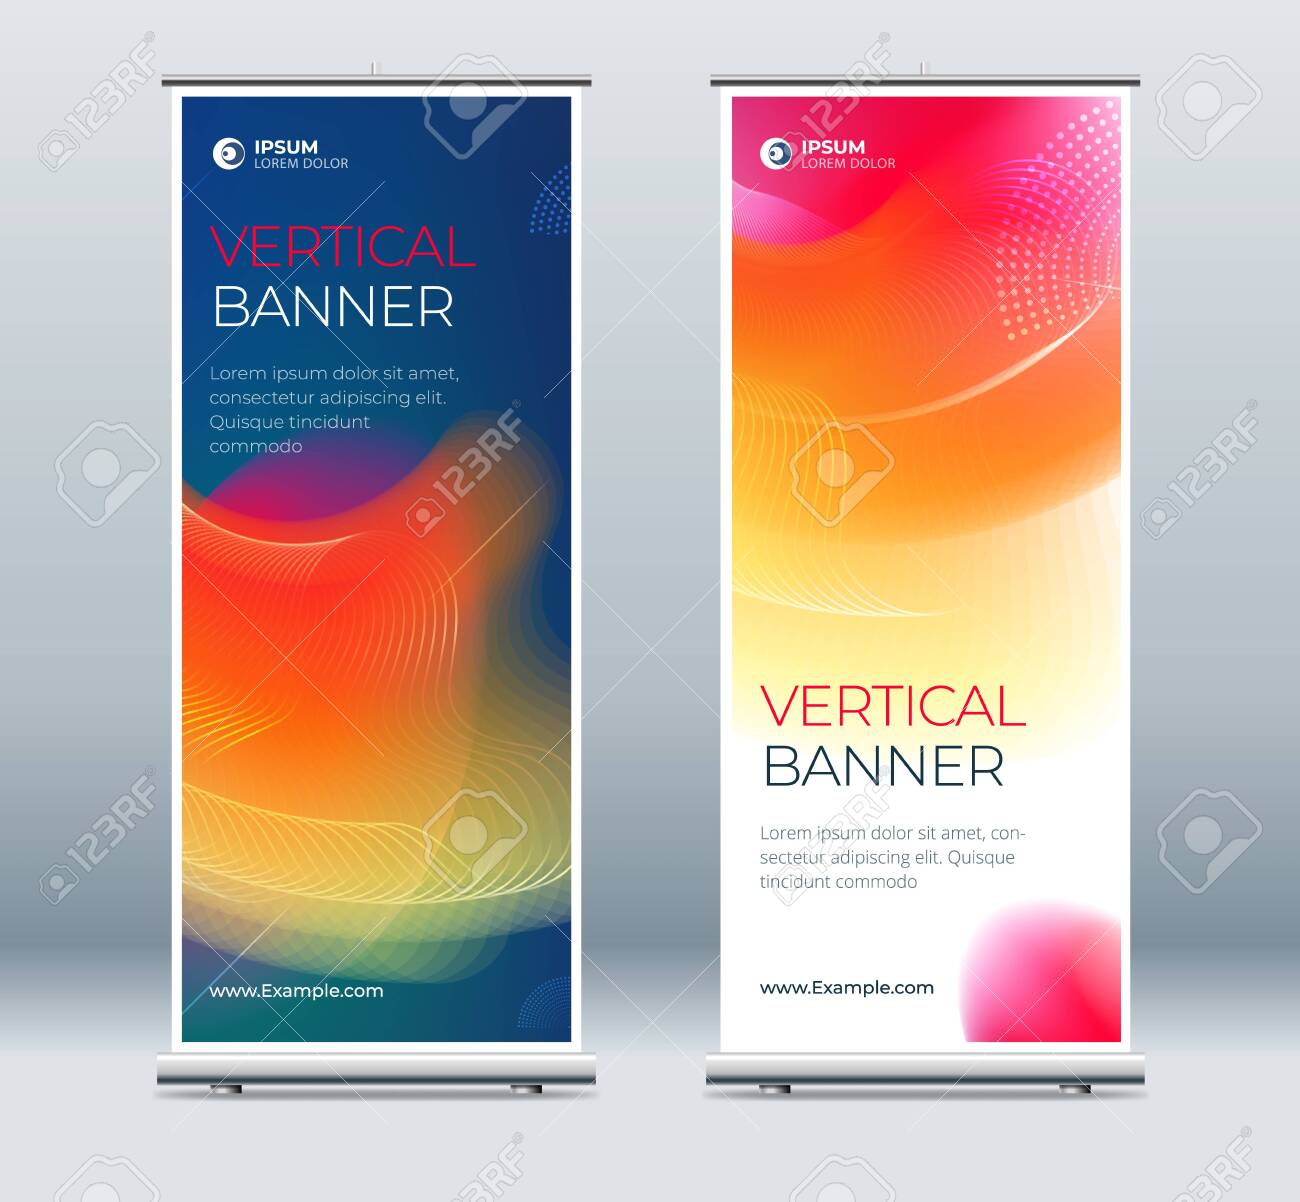 Roll Up banner stand presentation concept. Corporate business roll up template background. Vertical template billboard, banner stand or flag design layout. Poster for conference, forum, shop - 146943296